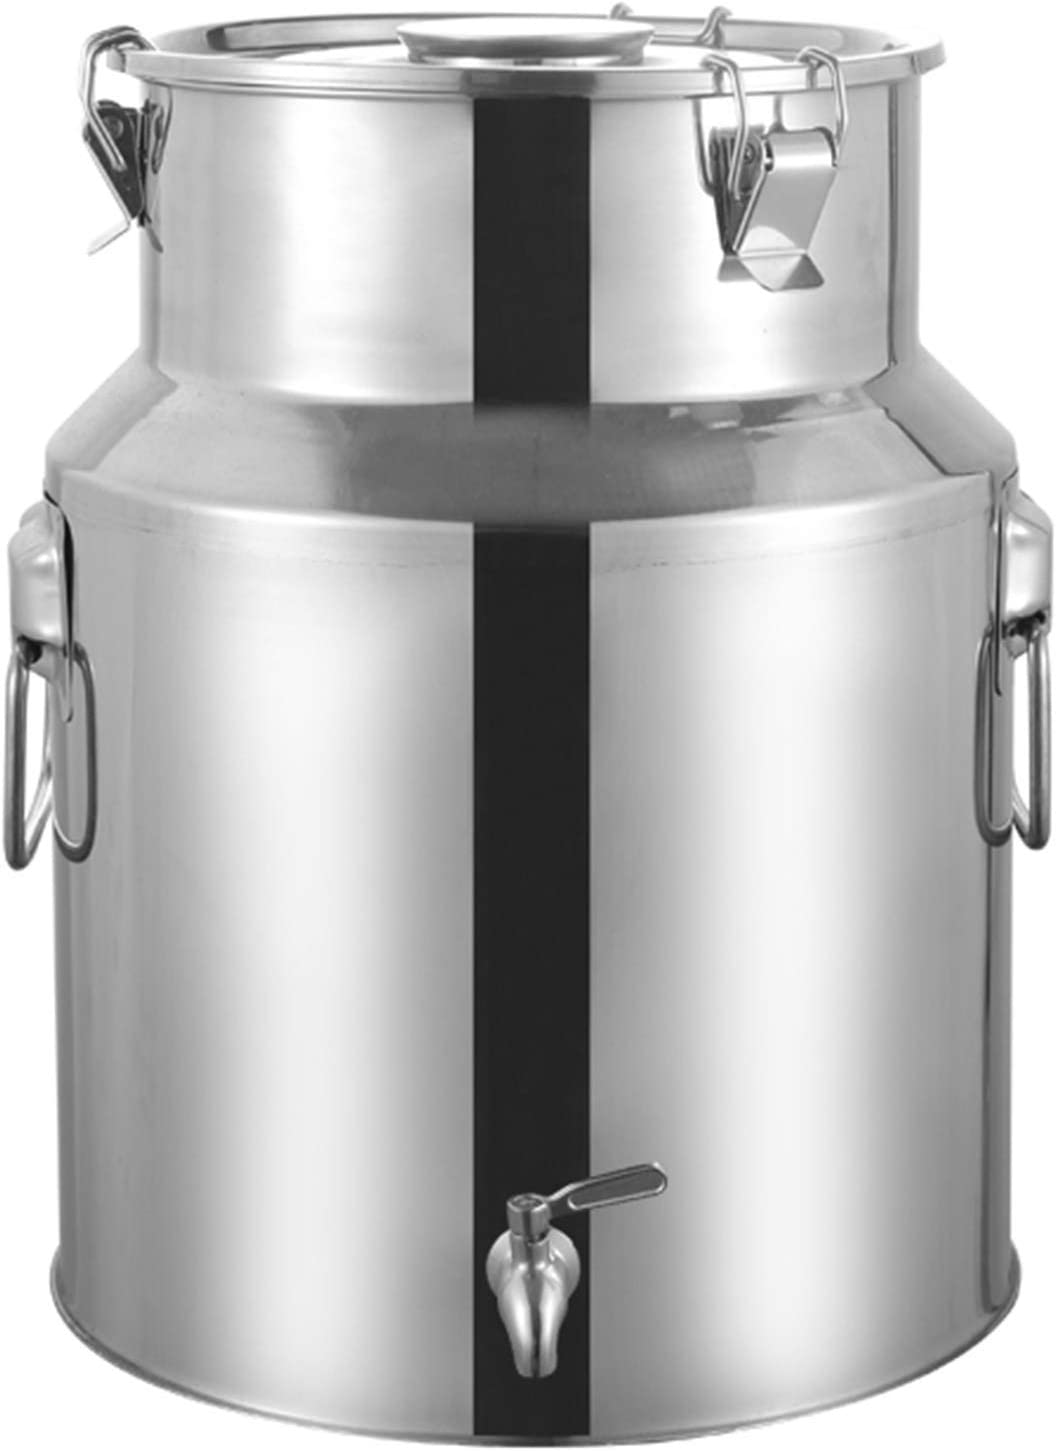 Stainless Steel Limited time sale Storage Food Philadelphia Mall Canist Tank